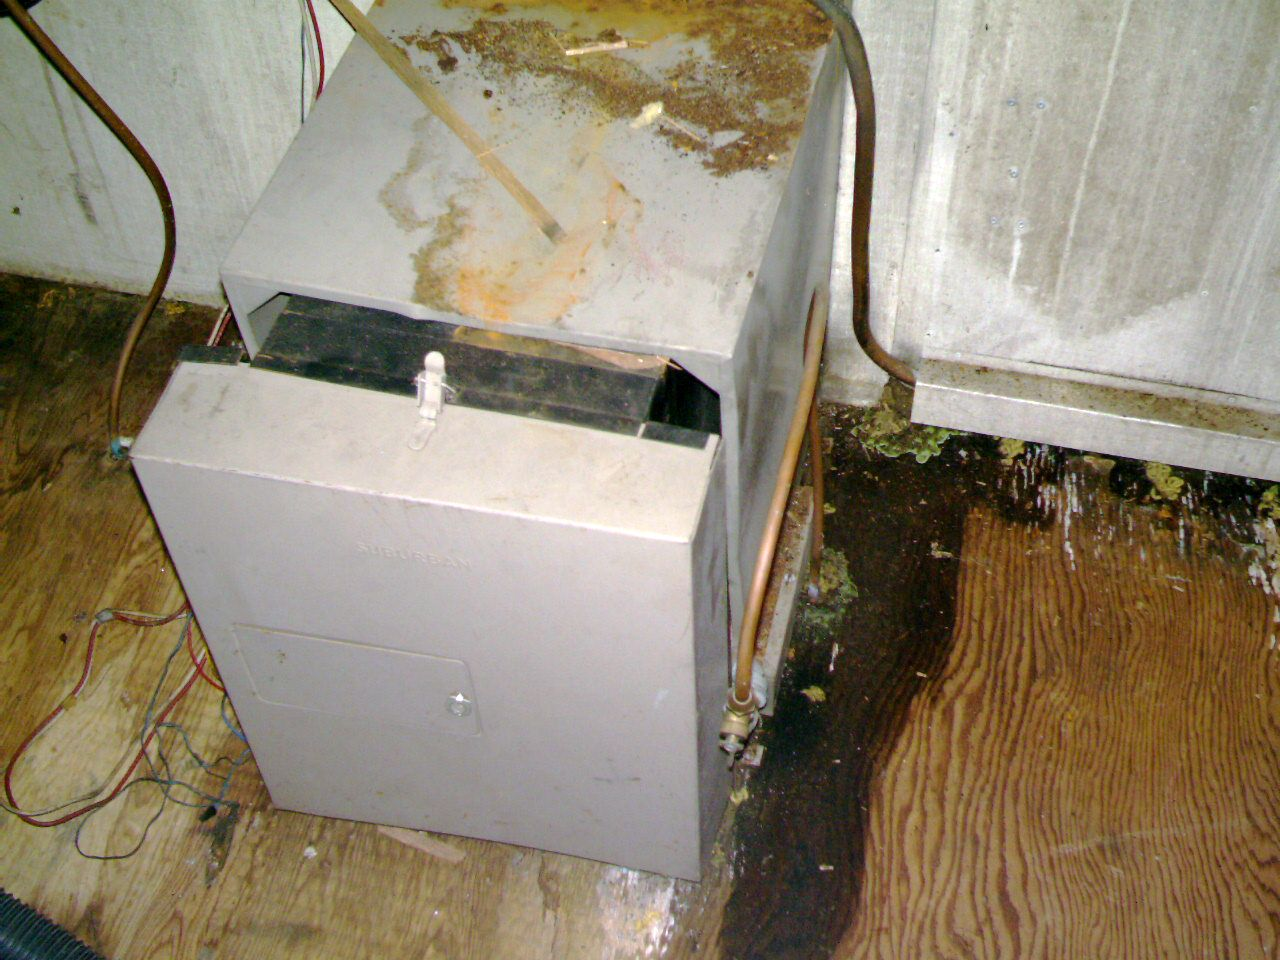 Click image for larger version  Name:Furnace.jpg Views:126 Size:200.2 KB ID:50905